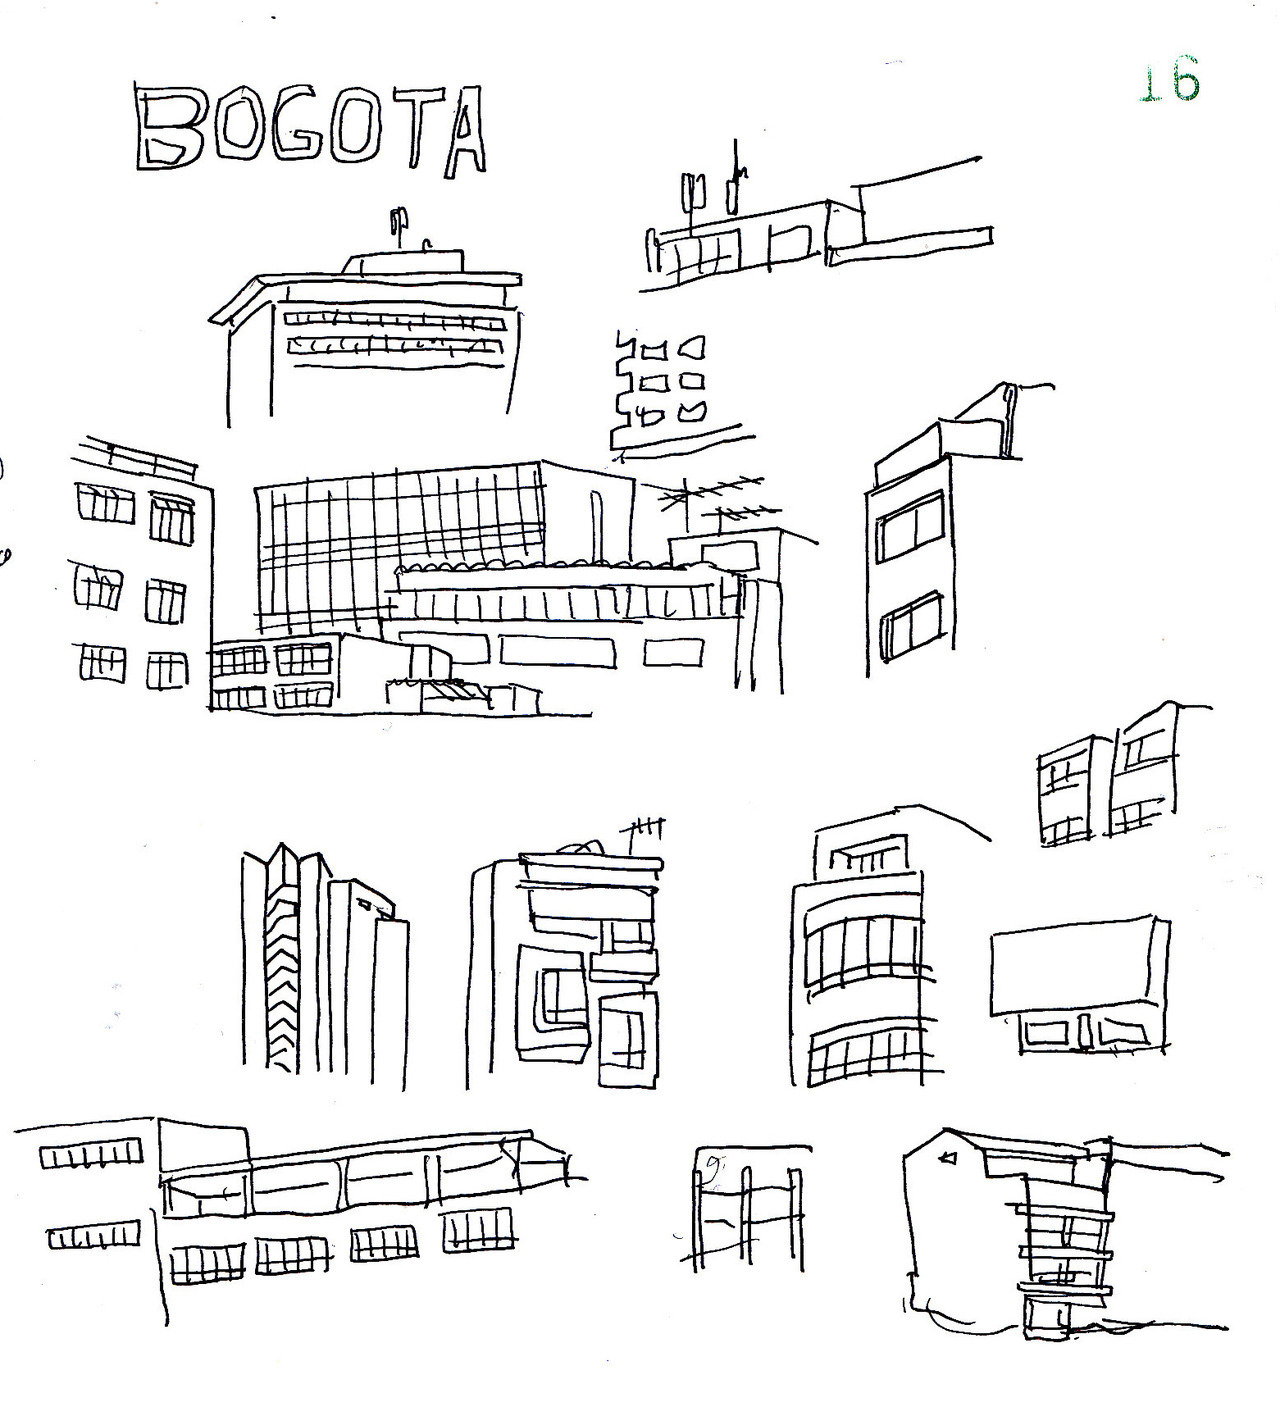 Bogotà drawings while riding the bus